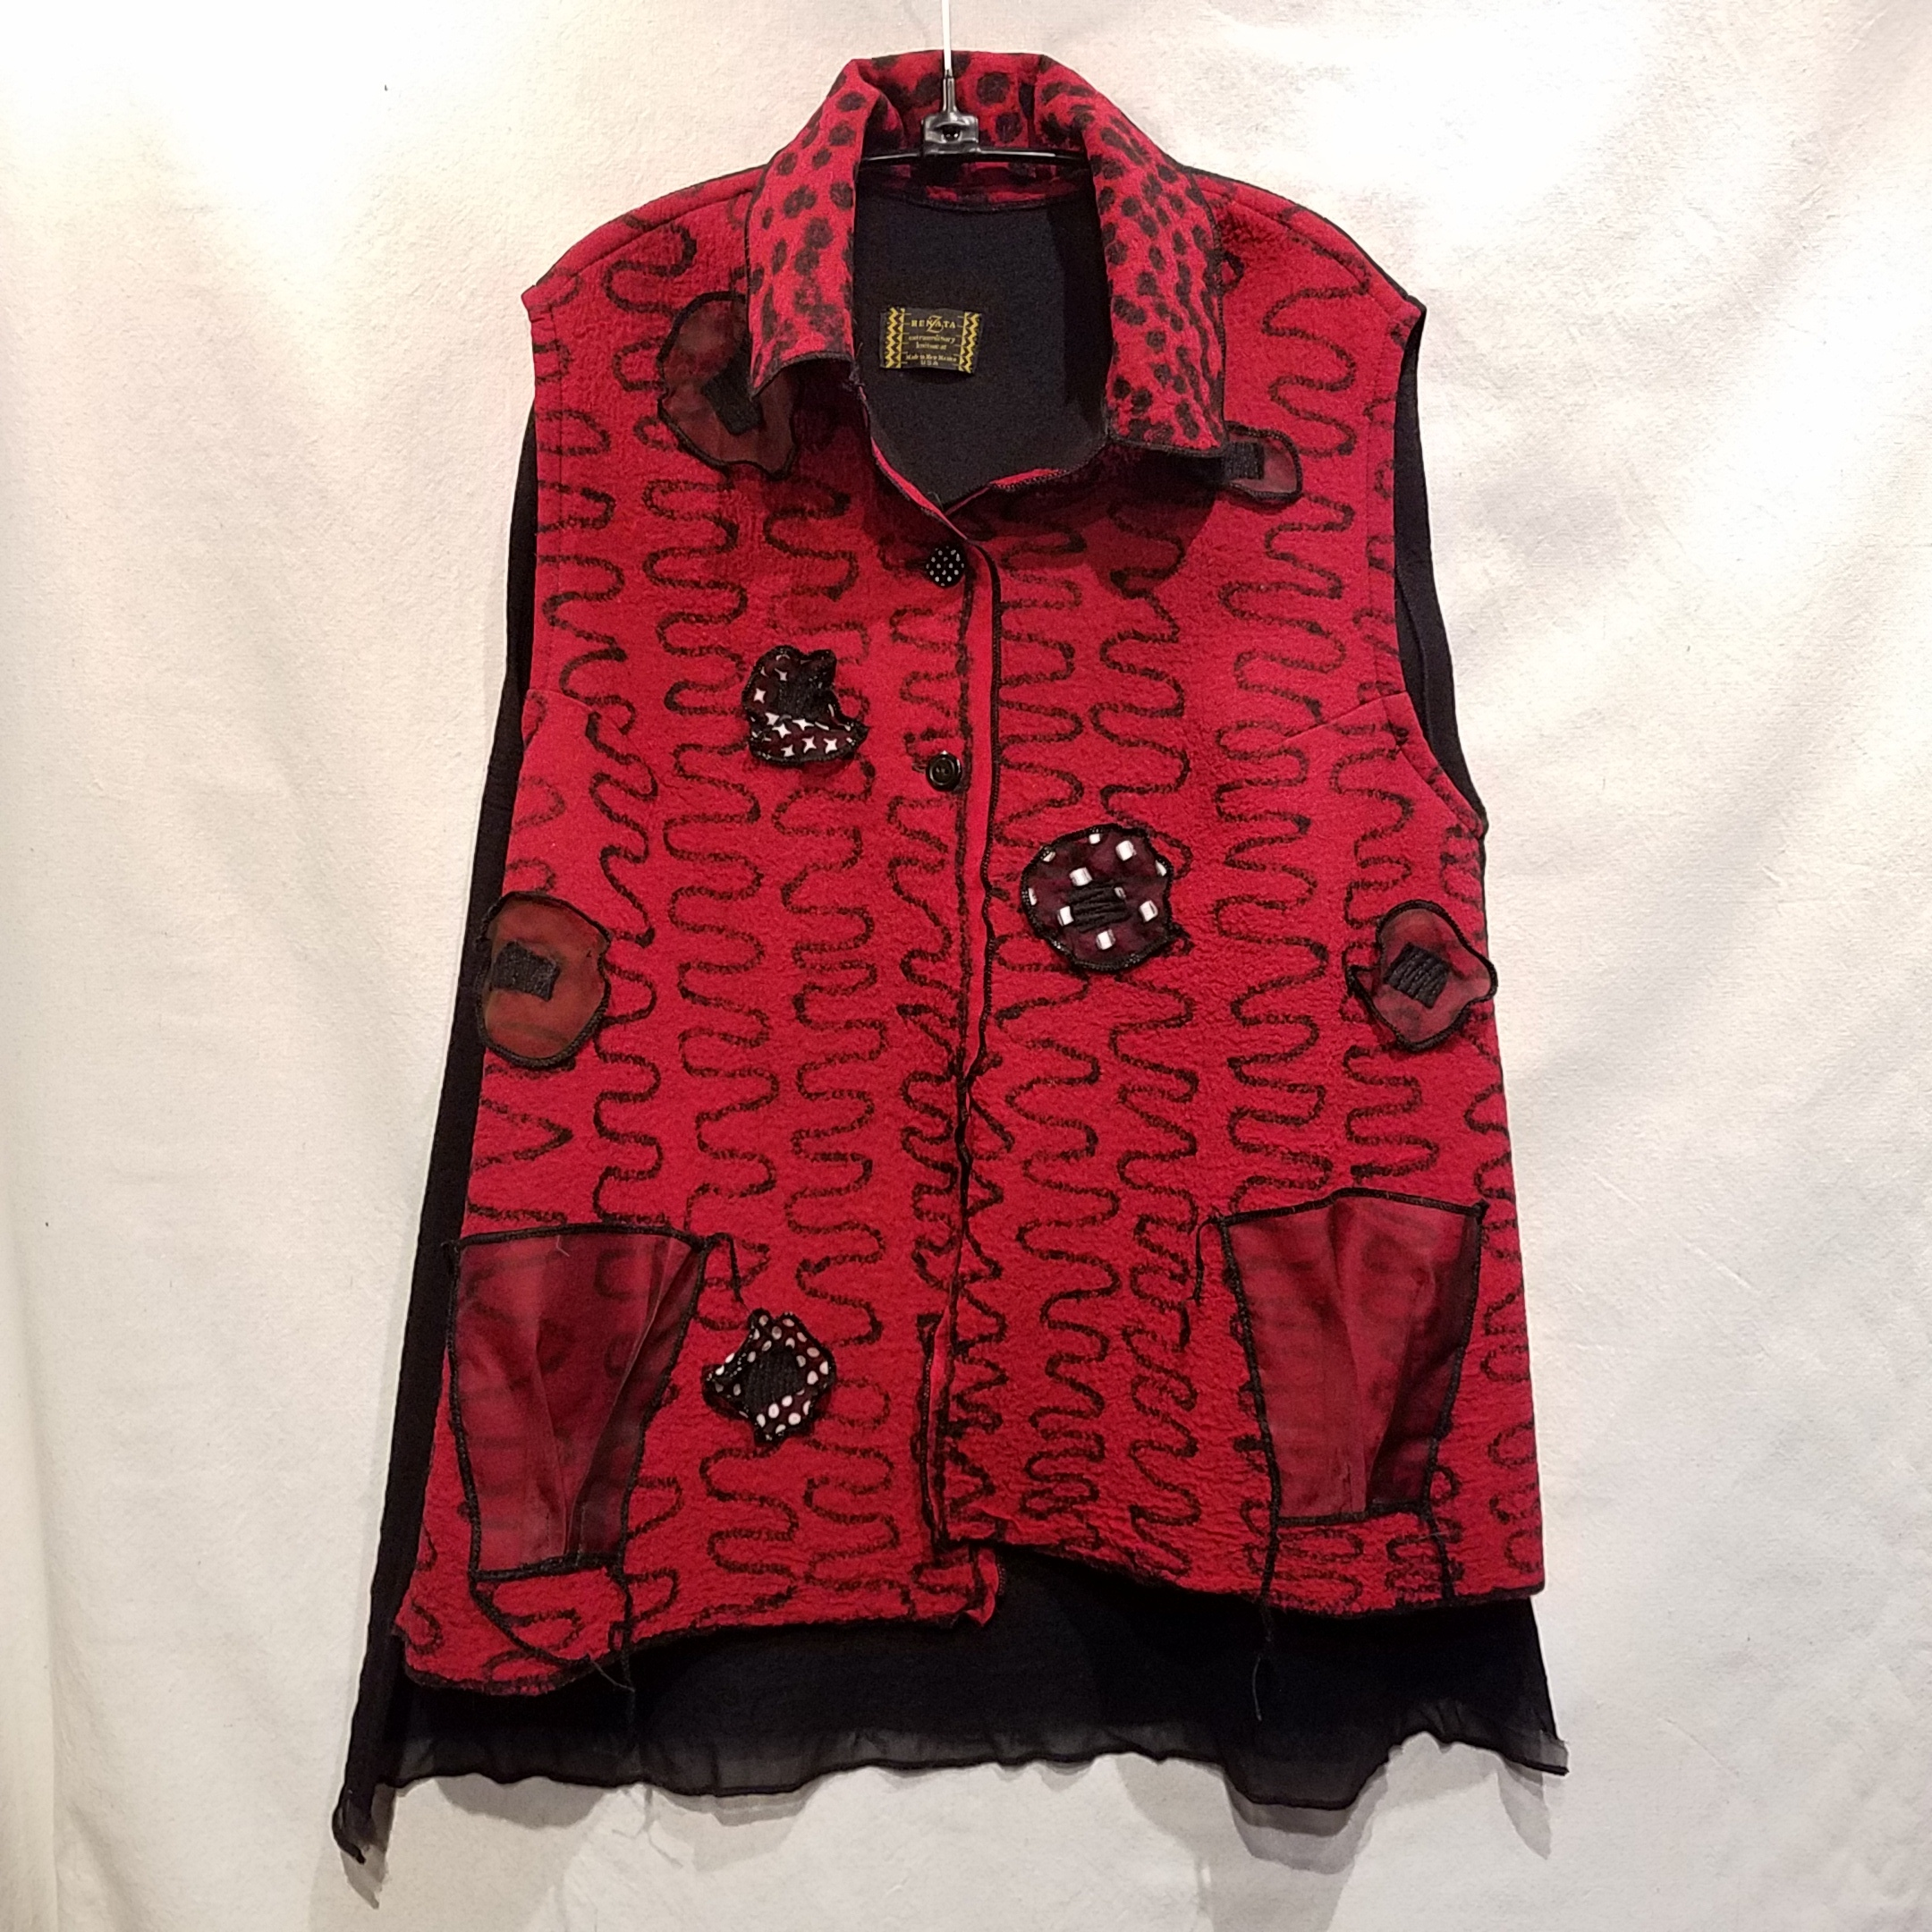 Felted Vest RZ923 $480 Red/black